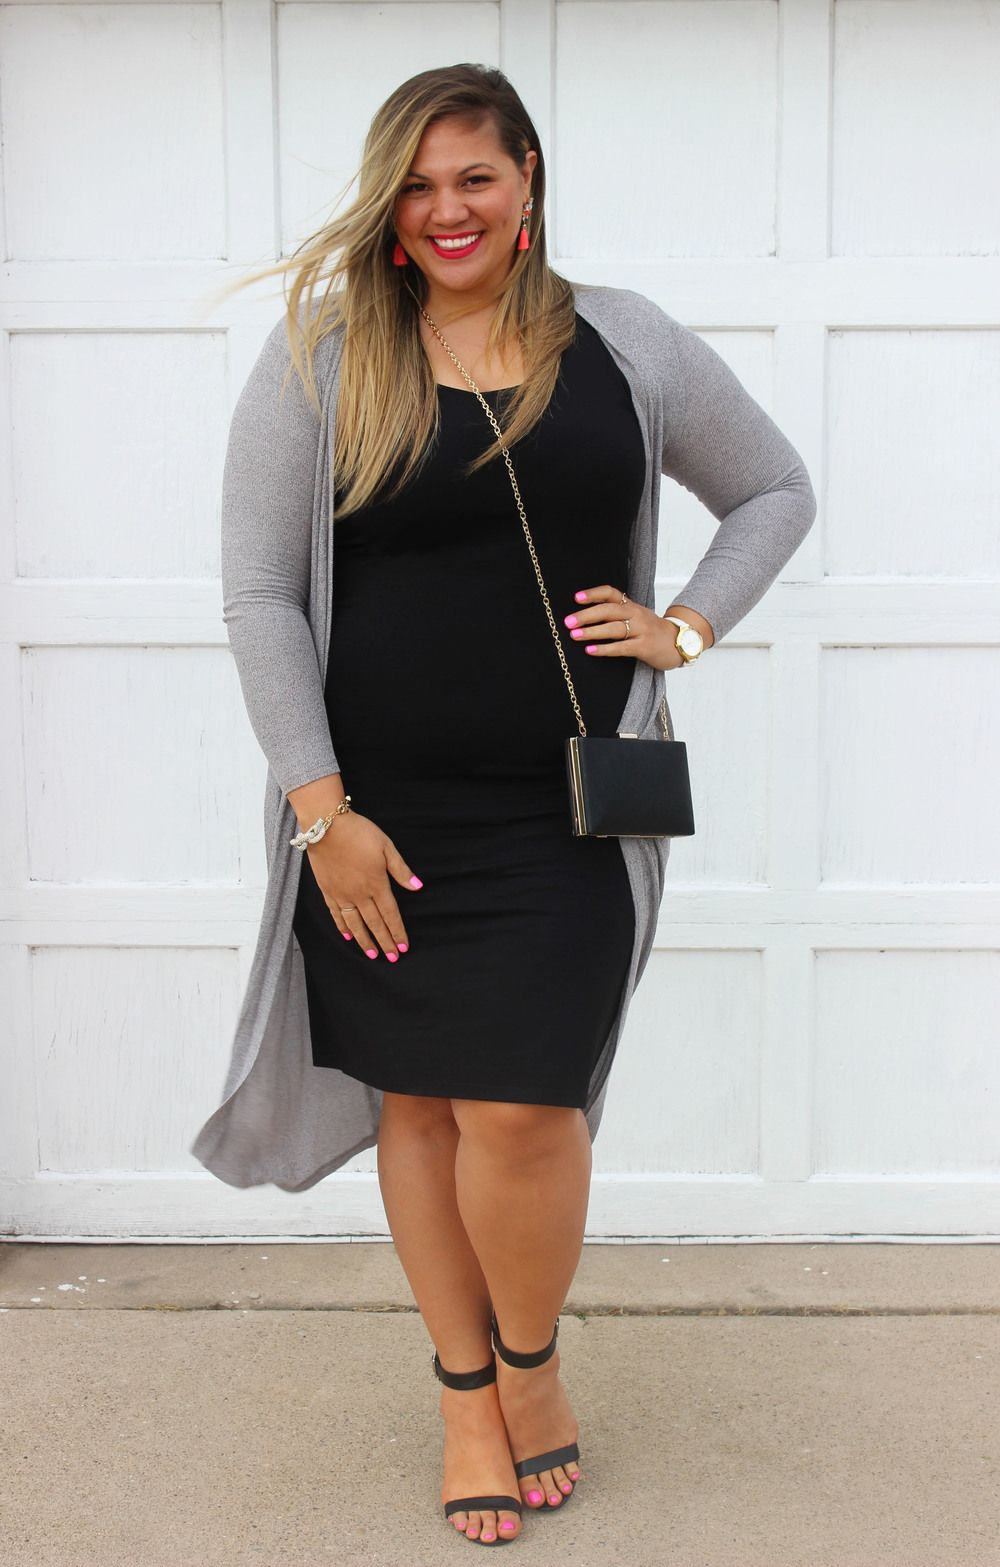 c8000da5987 Forever 21 Plus Size Fashion    Tanya    Blogger    socuteandcurvy.com     Body Con    Long Cardigan    Spring Look